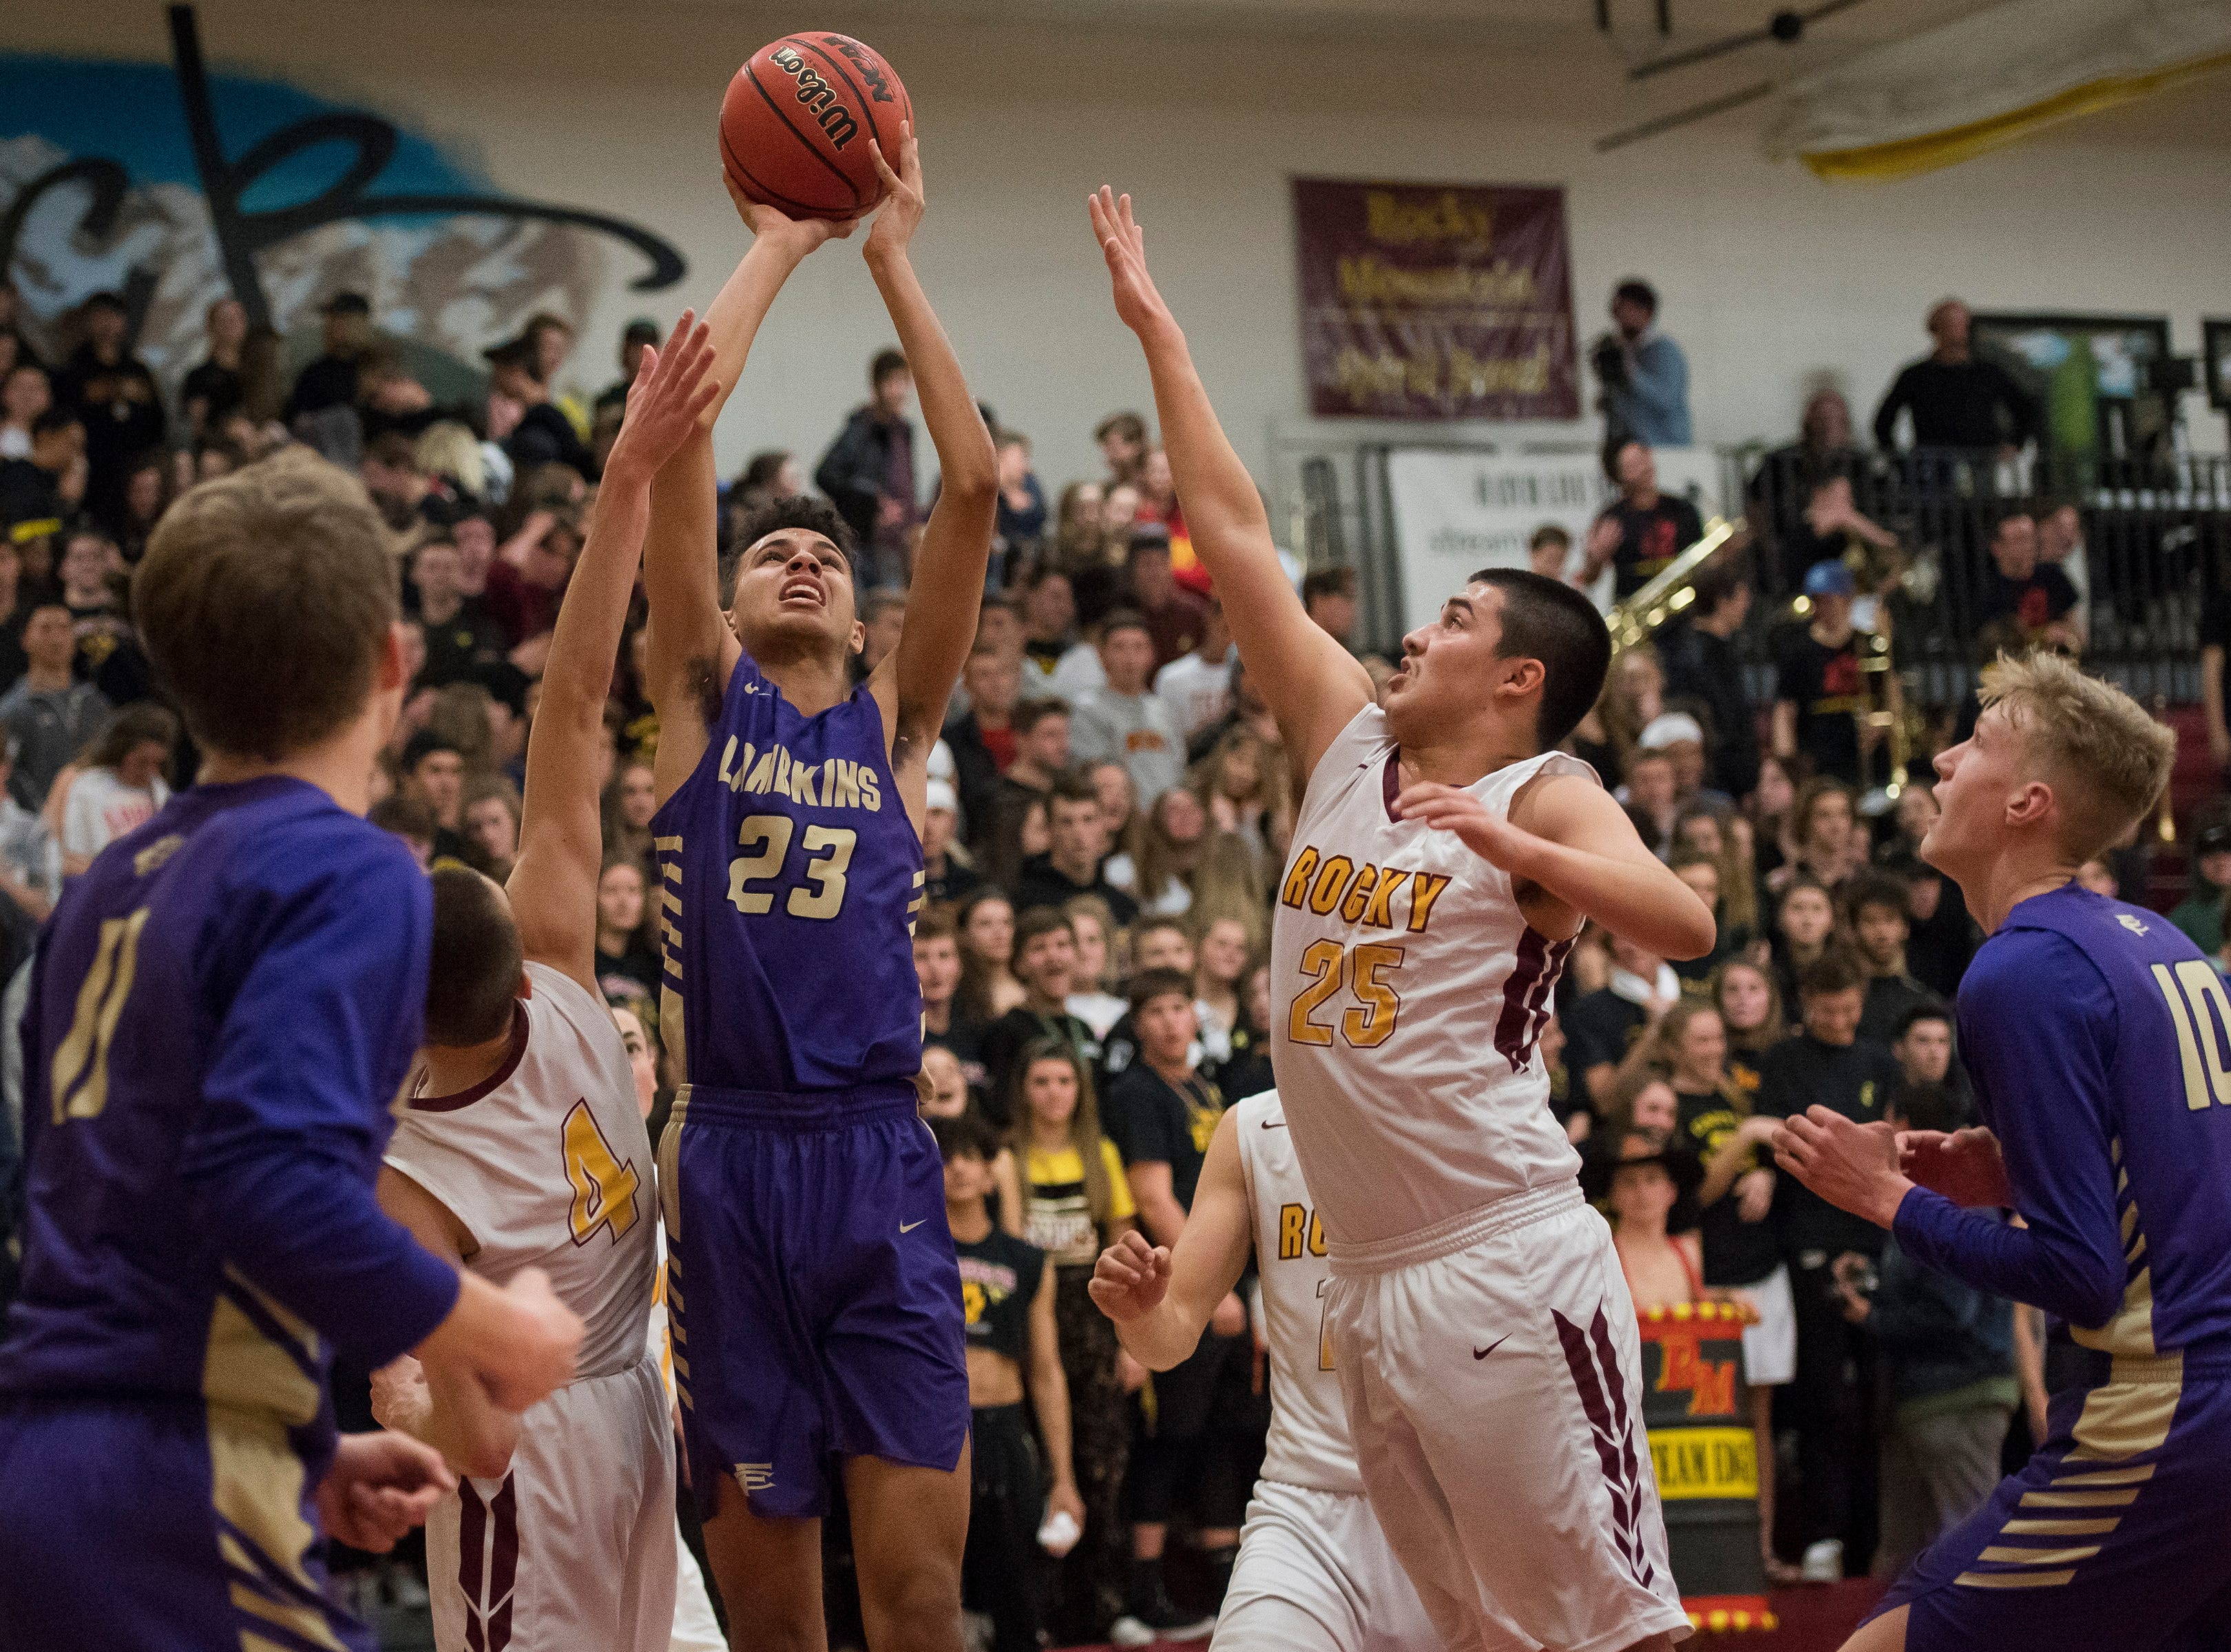 Fort Collins High School sophomore Danté Smith (23) takes a shot during a game against Rocky Mountain High School on Friday, Jan. 18, 2019, at Rocky Mountain High School in Fort Collins, Colo.